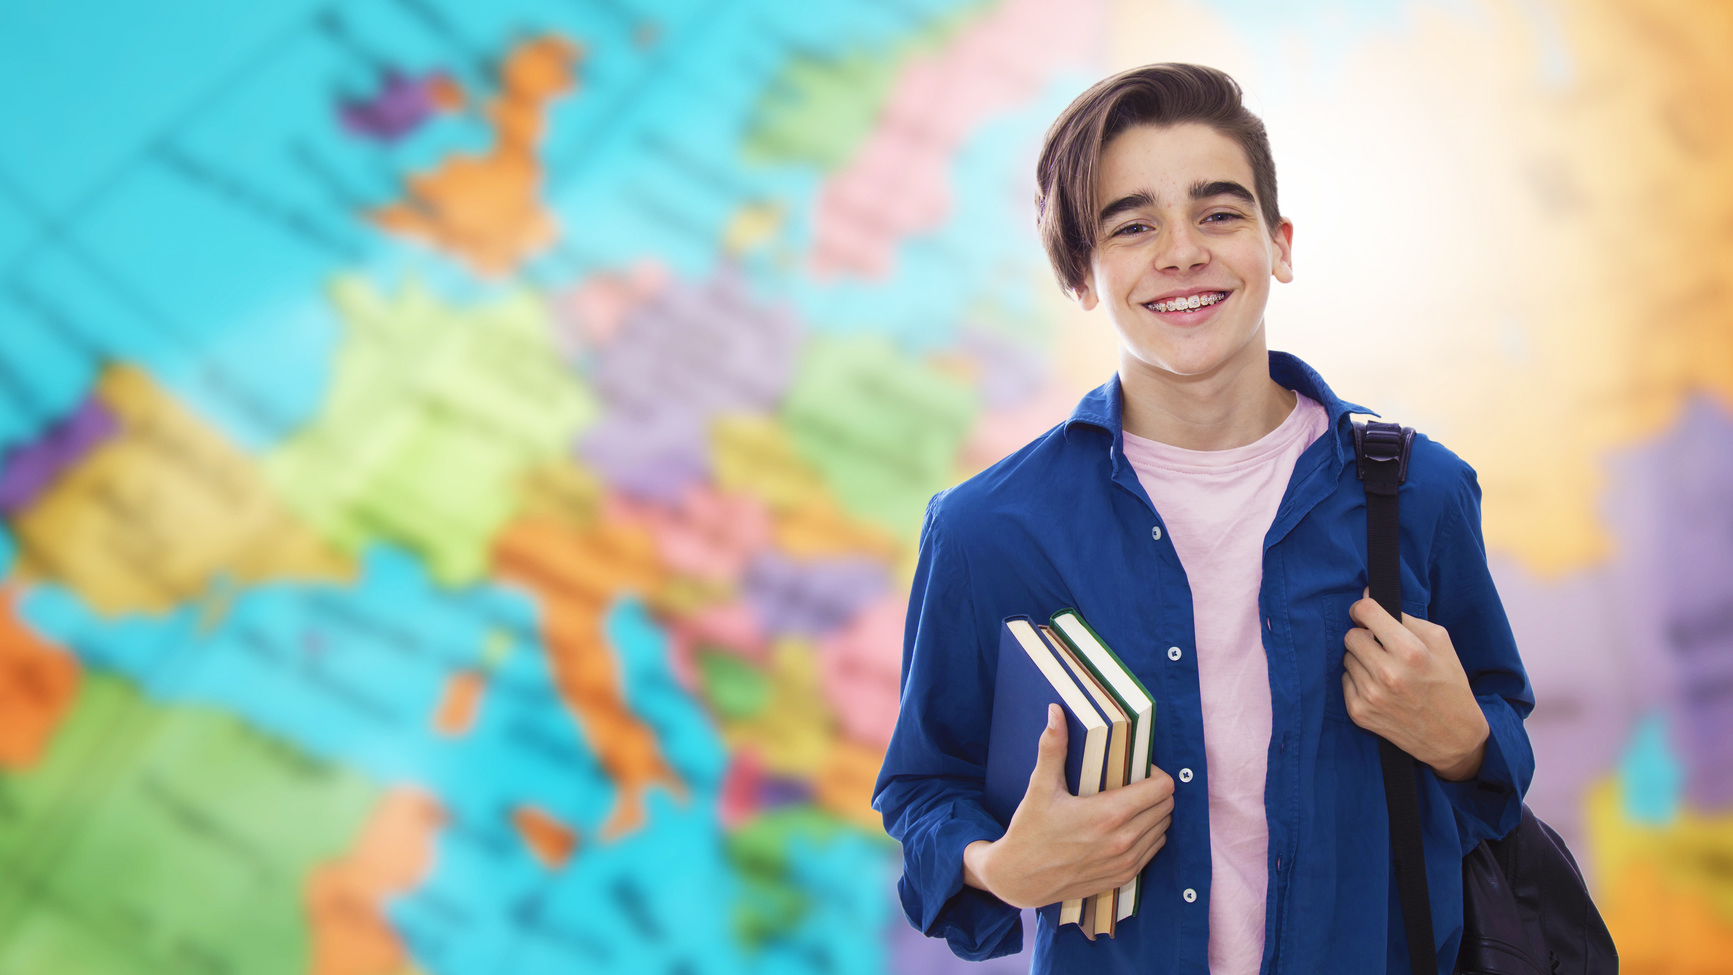 The best thing for our local economy might be international students